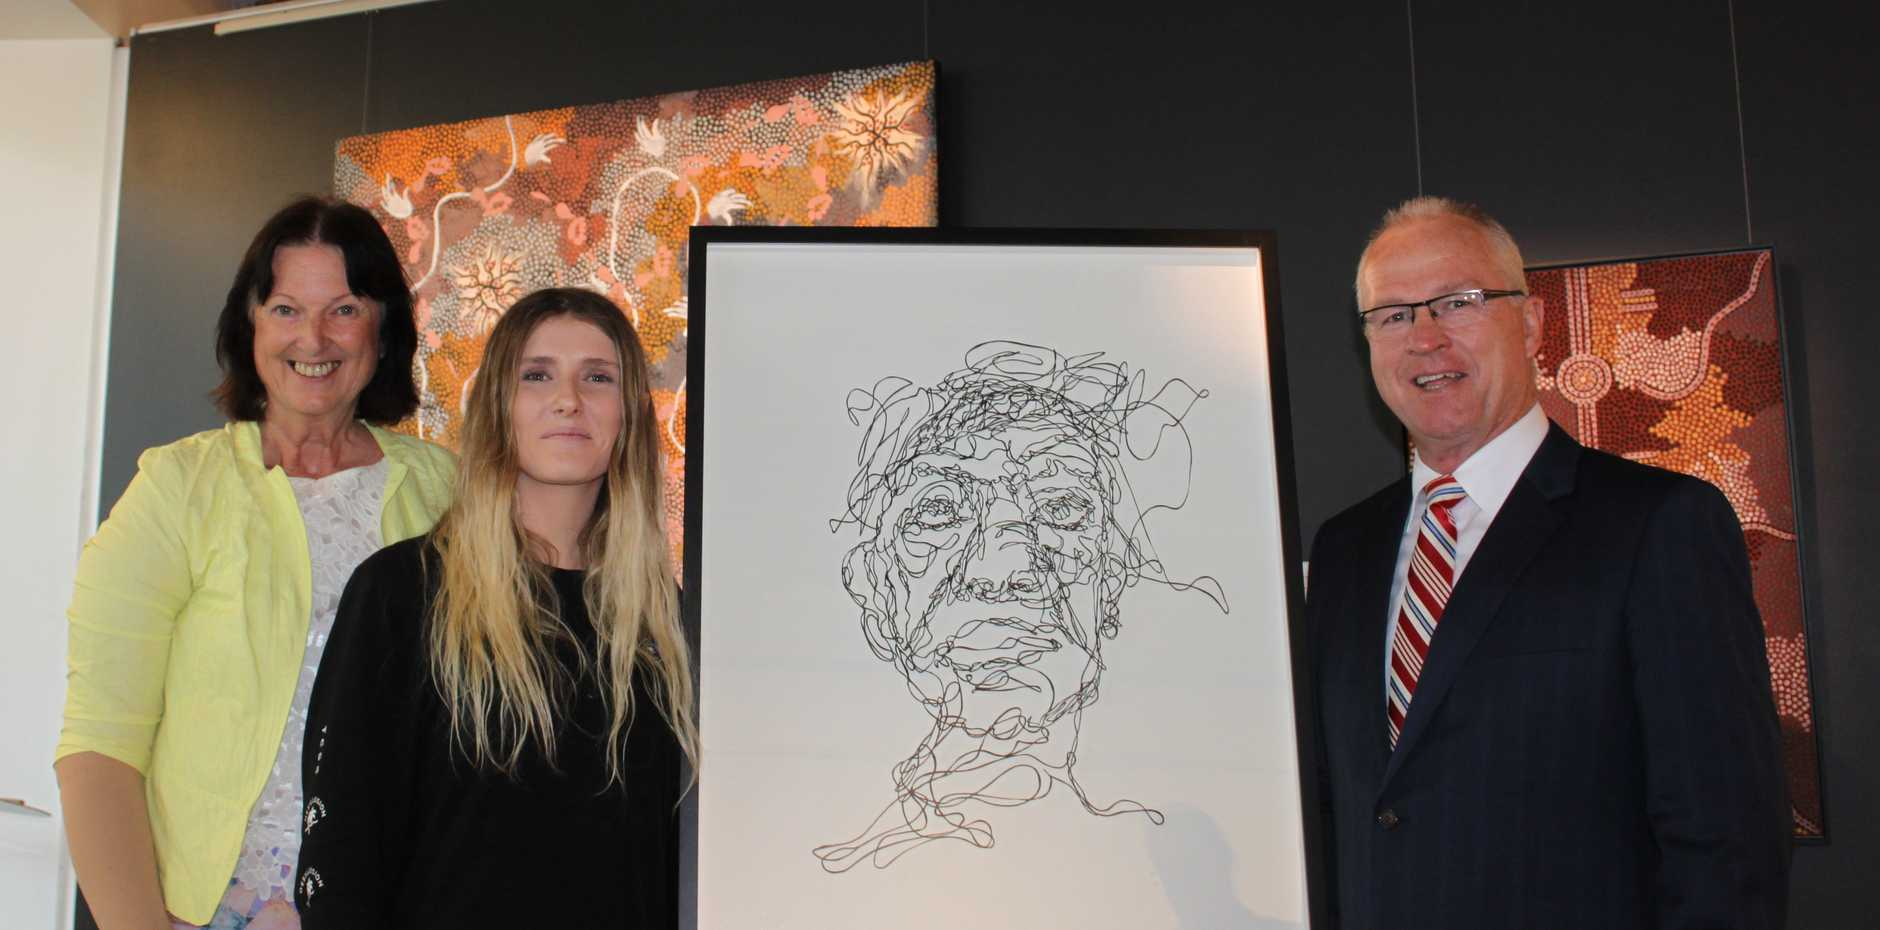 Cr Jenny McKay, Sunshine Coast Art Prize 2015 Highly Commended artist Jamie Rochester, Mayor Mark Jamieson.  Image courtesy of the artist and owner.